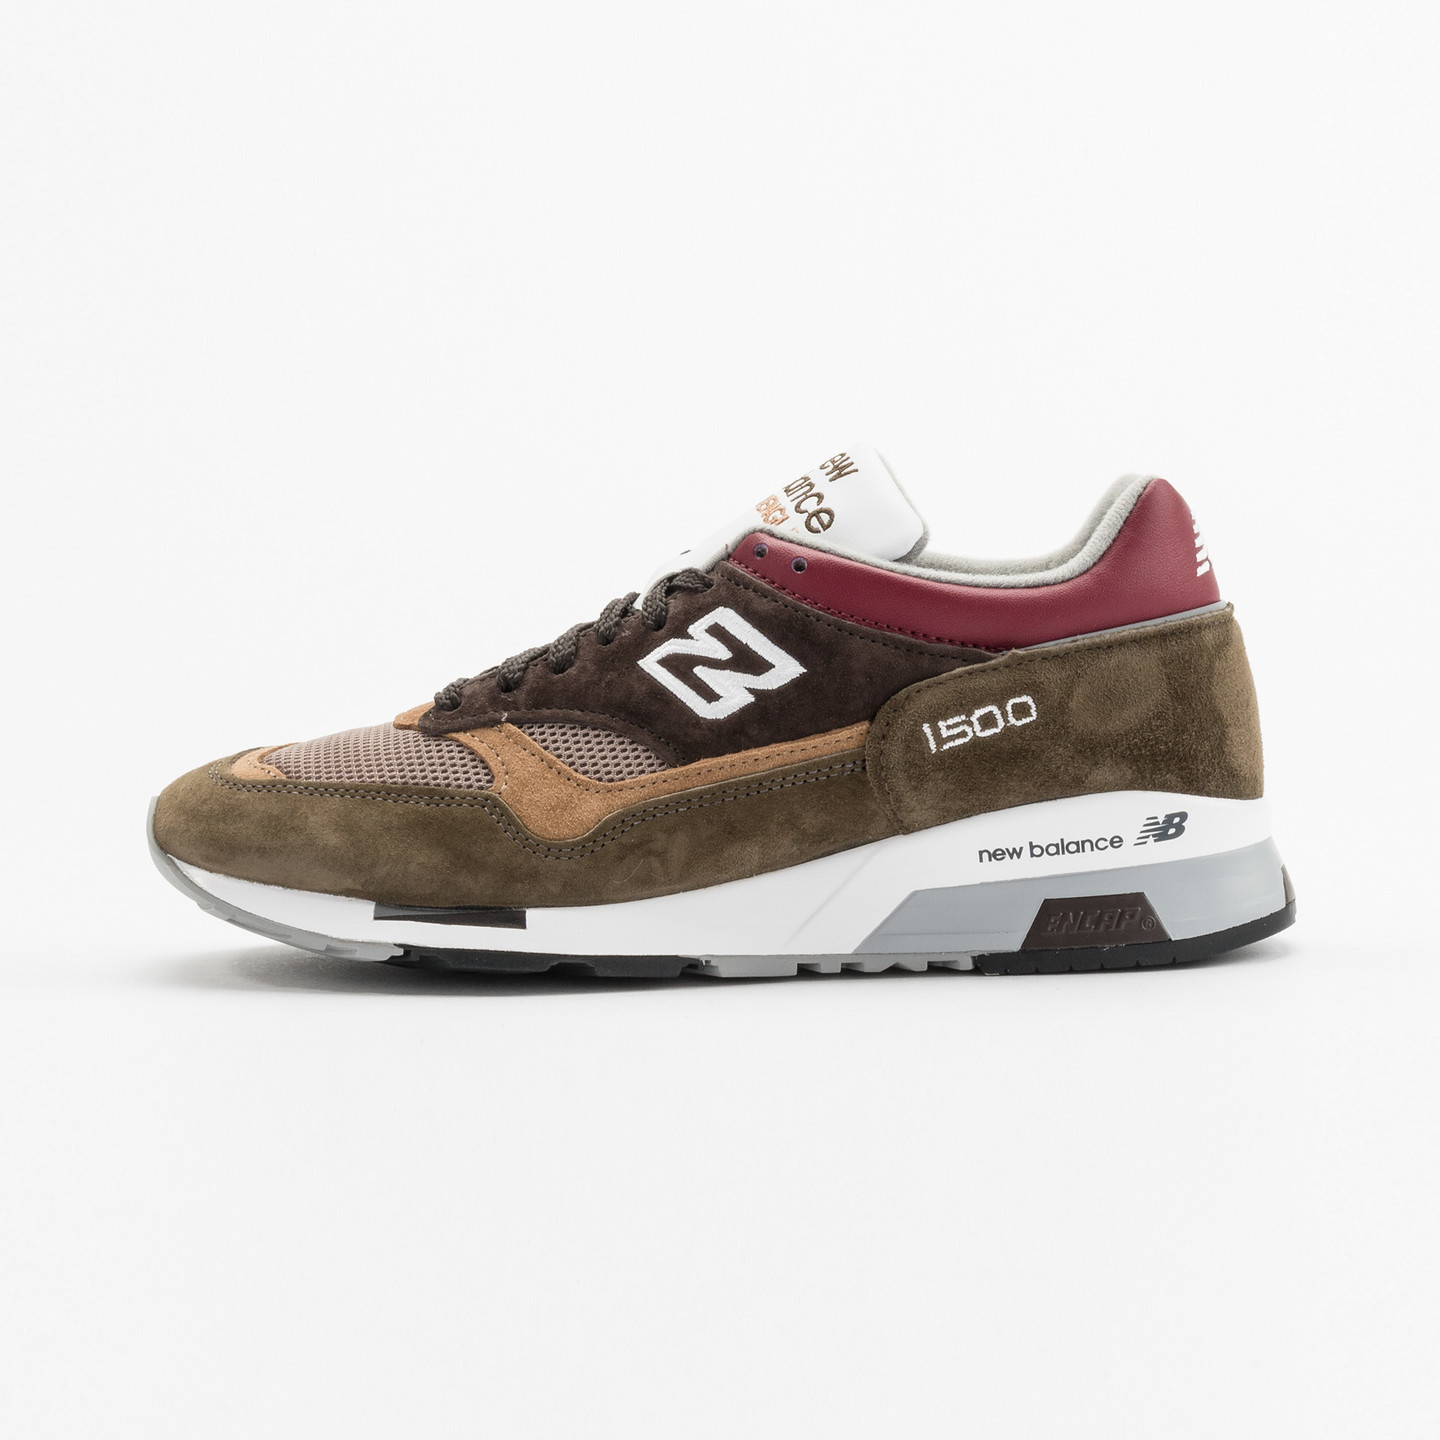 New Balance M1500 CBG - Made in England Green / Brown / Bordeaux M1500CBG